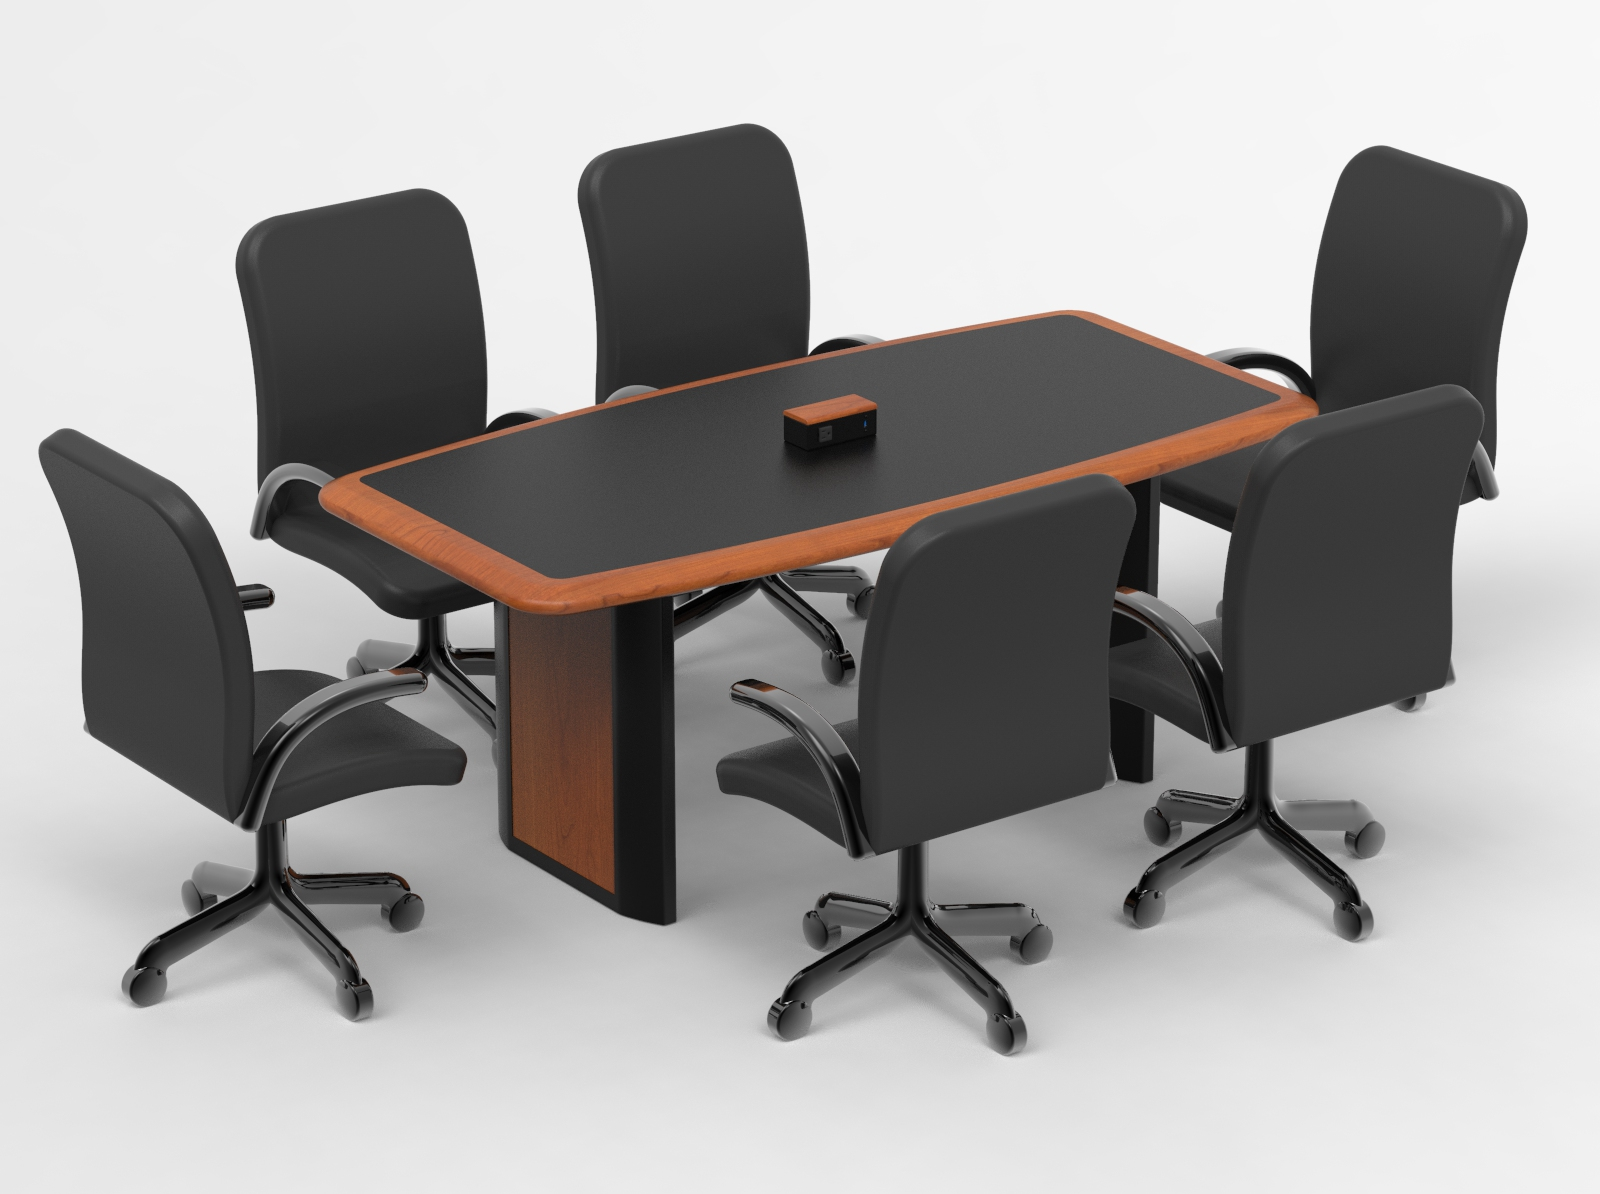 Outstanding Power And Data Connected Conference Table For Six Caretta Beutiful Home Inspiration Aditmahrainfo